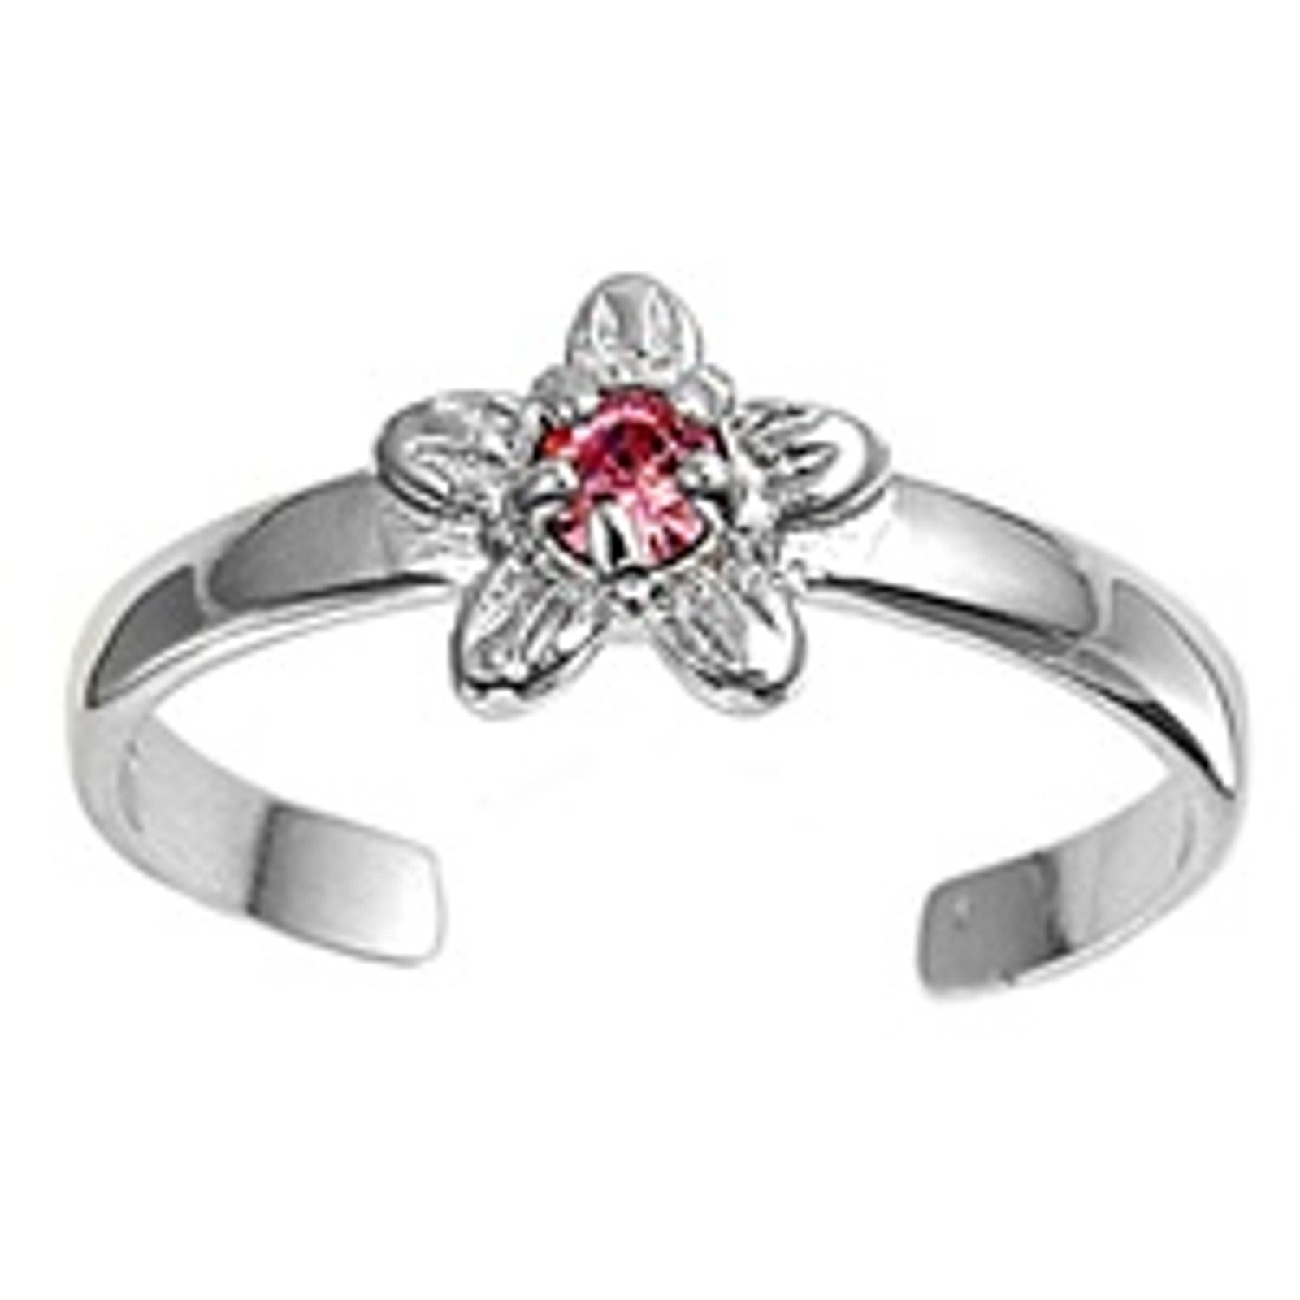 Pink Cubic Zirconia Five Petal Flower Adjustable Toe Ring